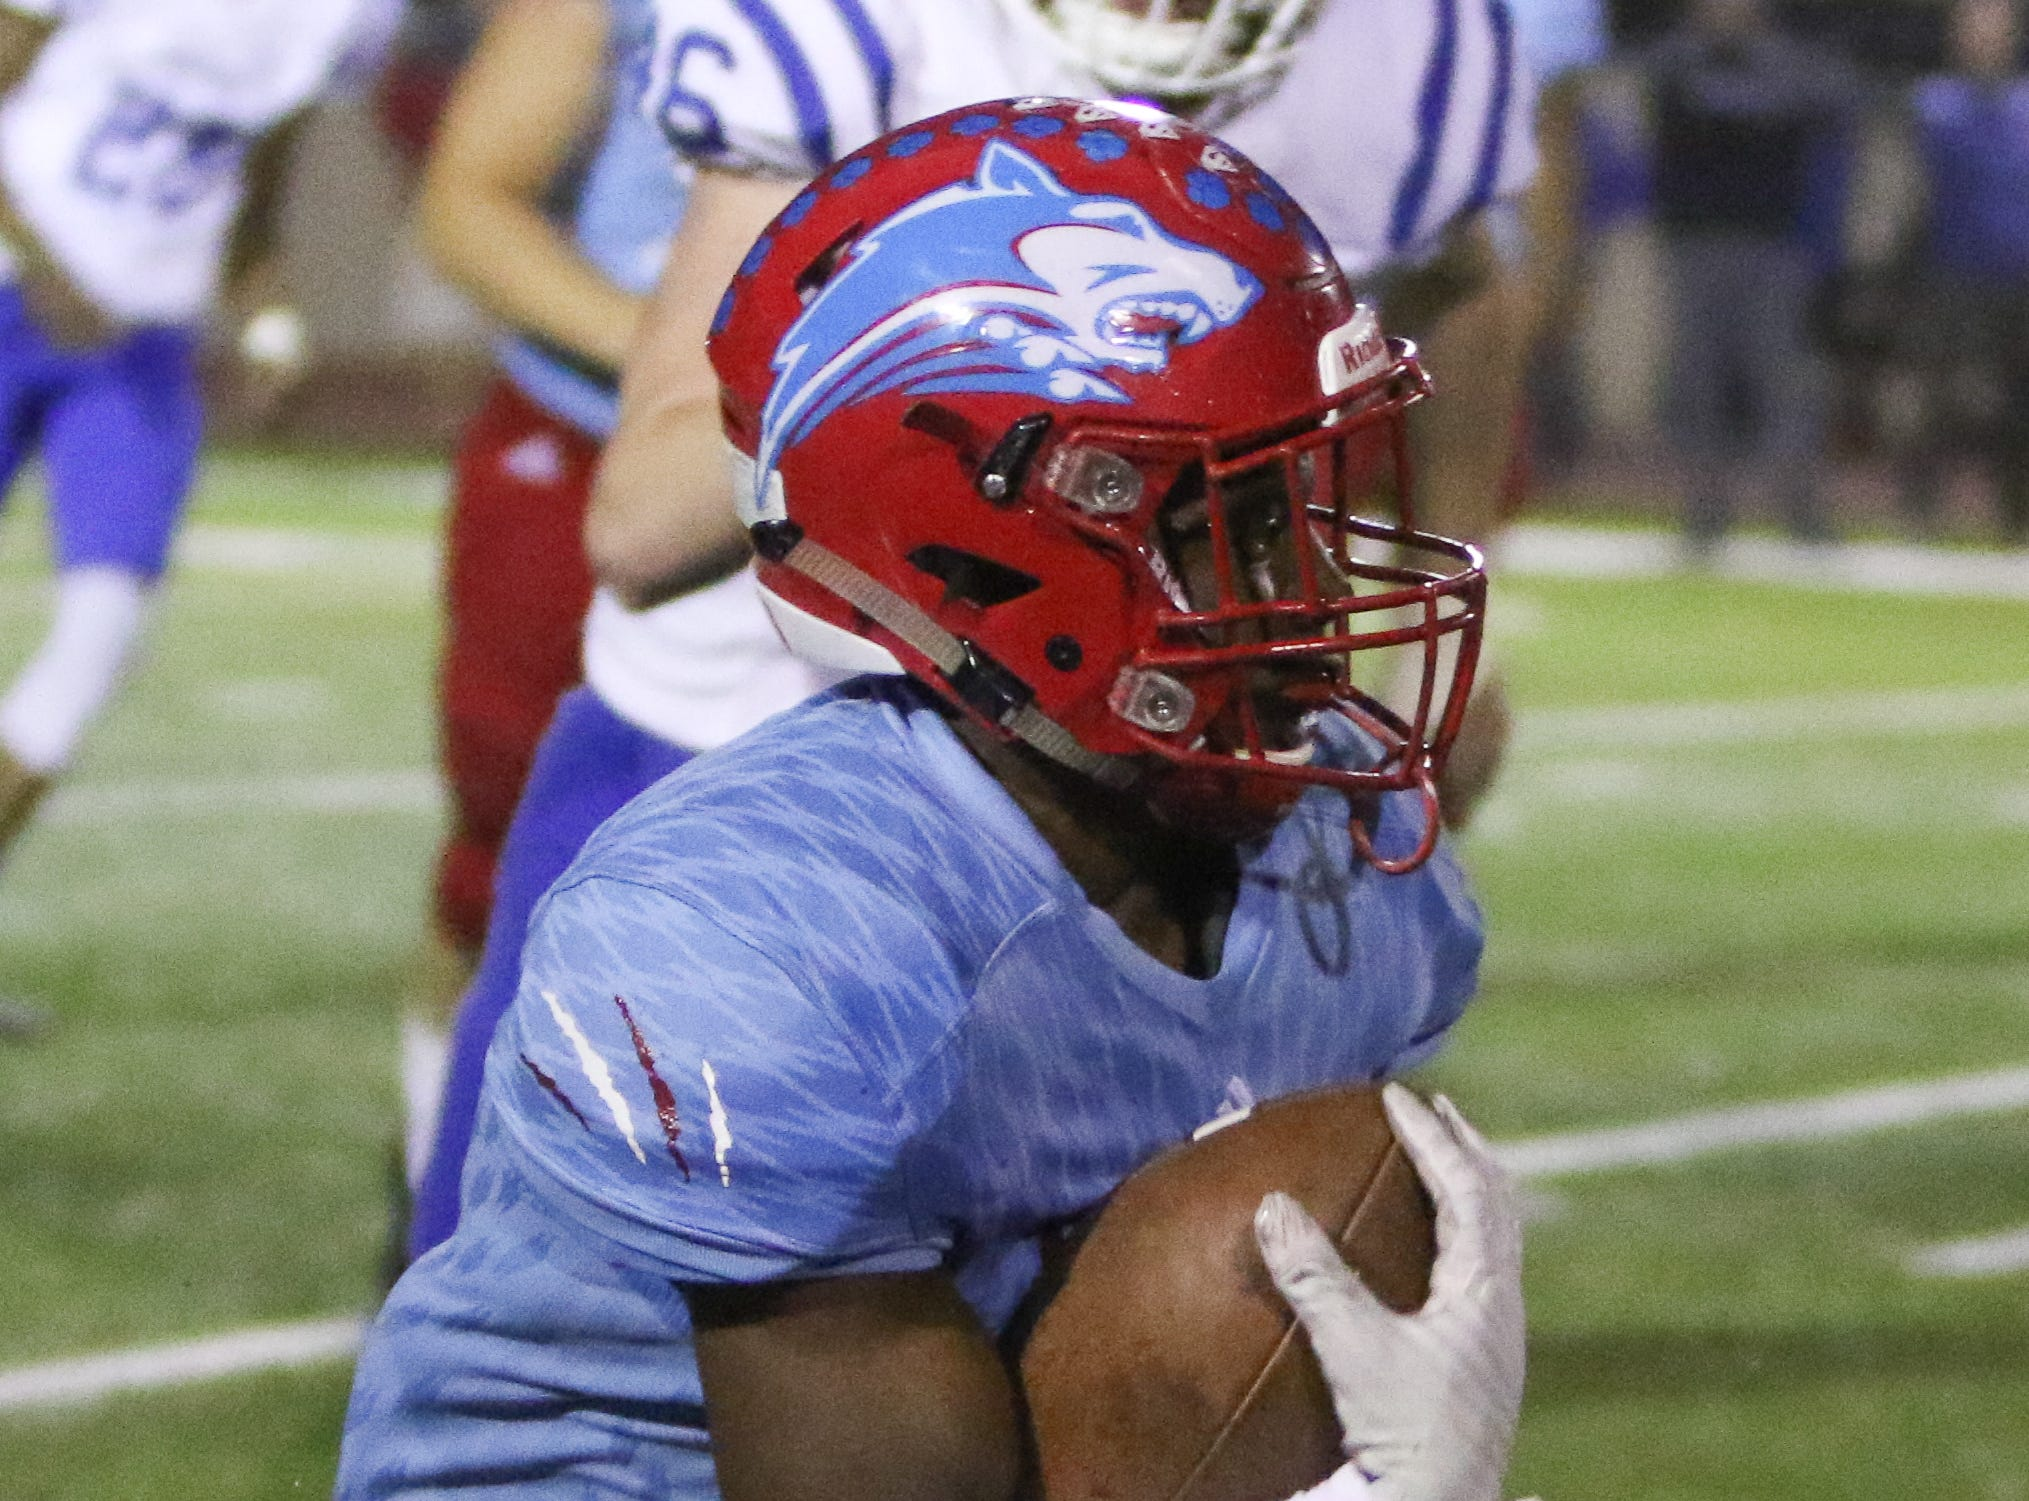 Hirschi's Tian Harrell runs for a first down against Decatur Friday, Nov. 30, 2018, at Newton Field in Graham.